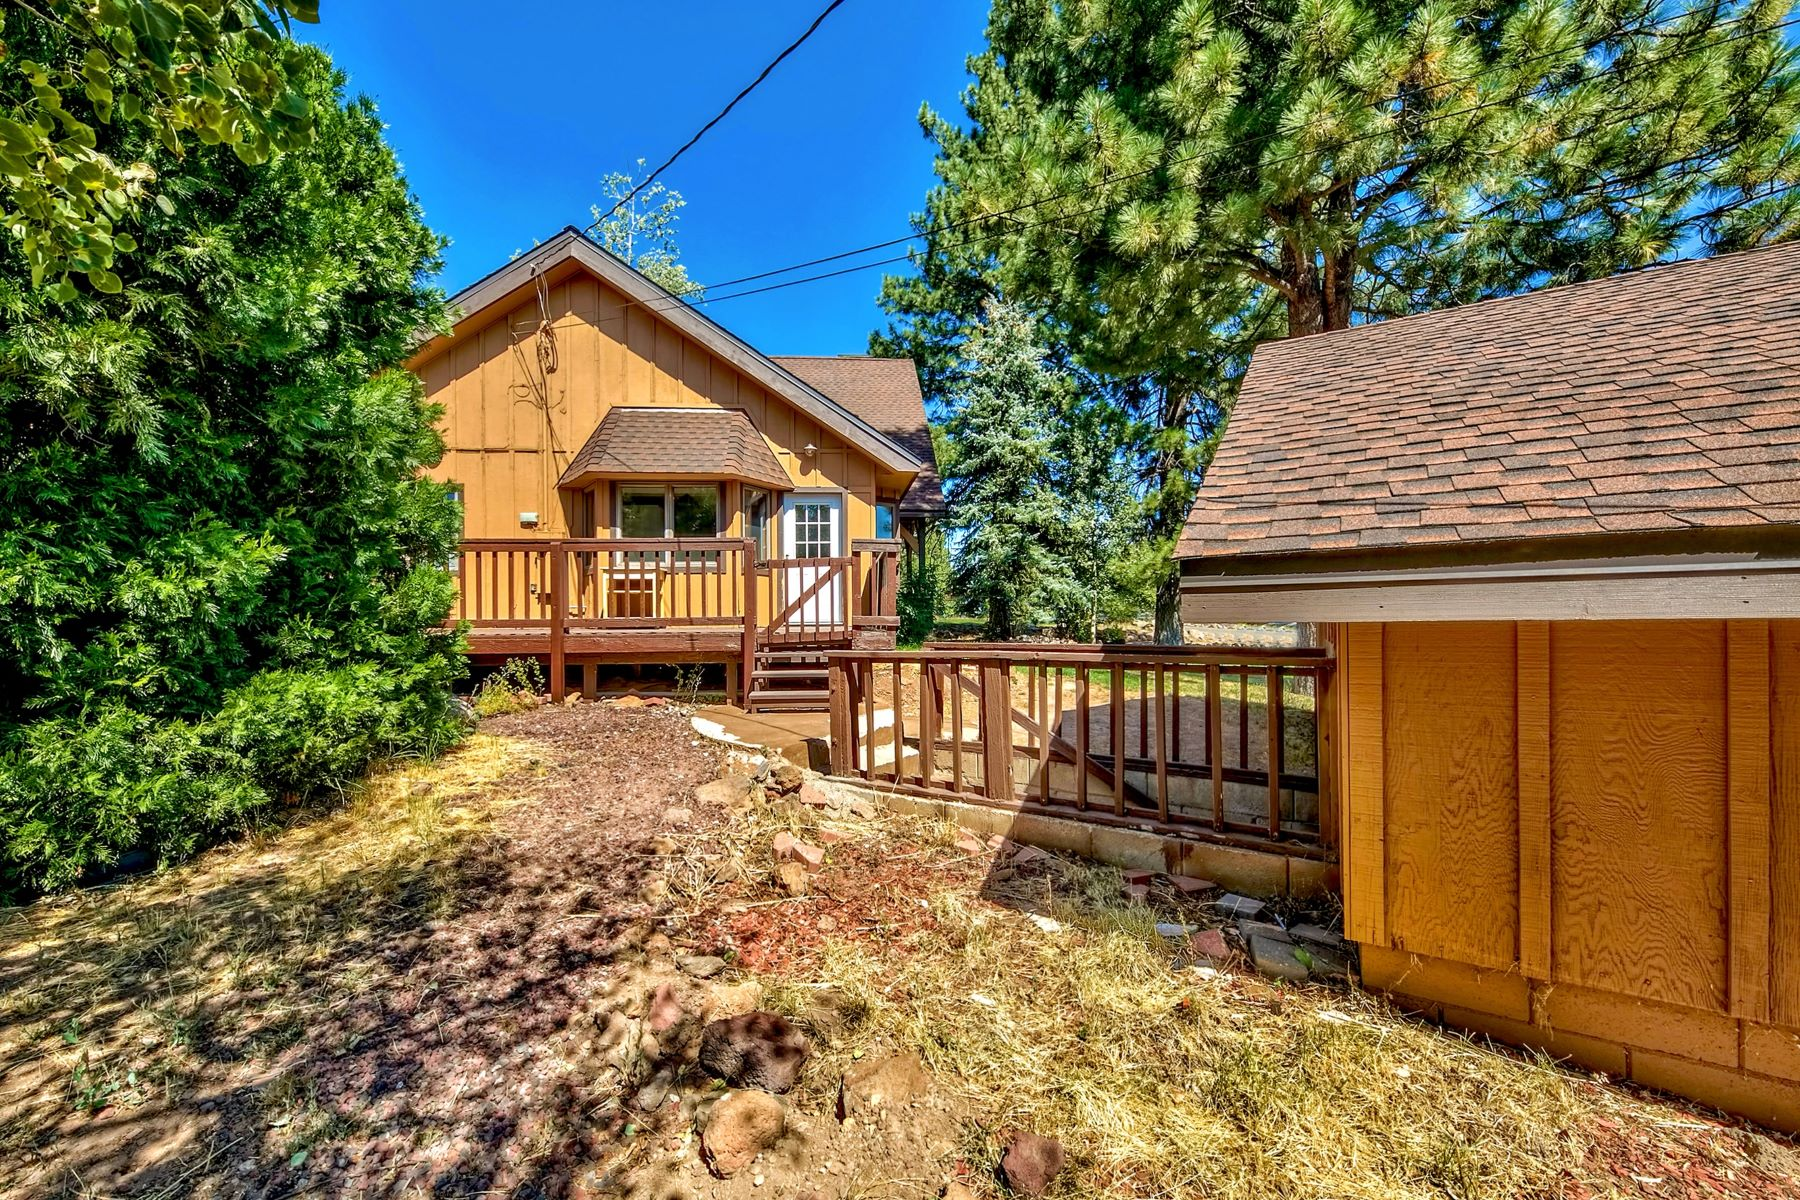 Additional photo for property listing at 15514 Archery Way, Truckee, CA 15514 Archery Way Truckee, California 96161 United States